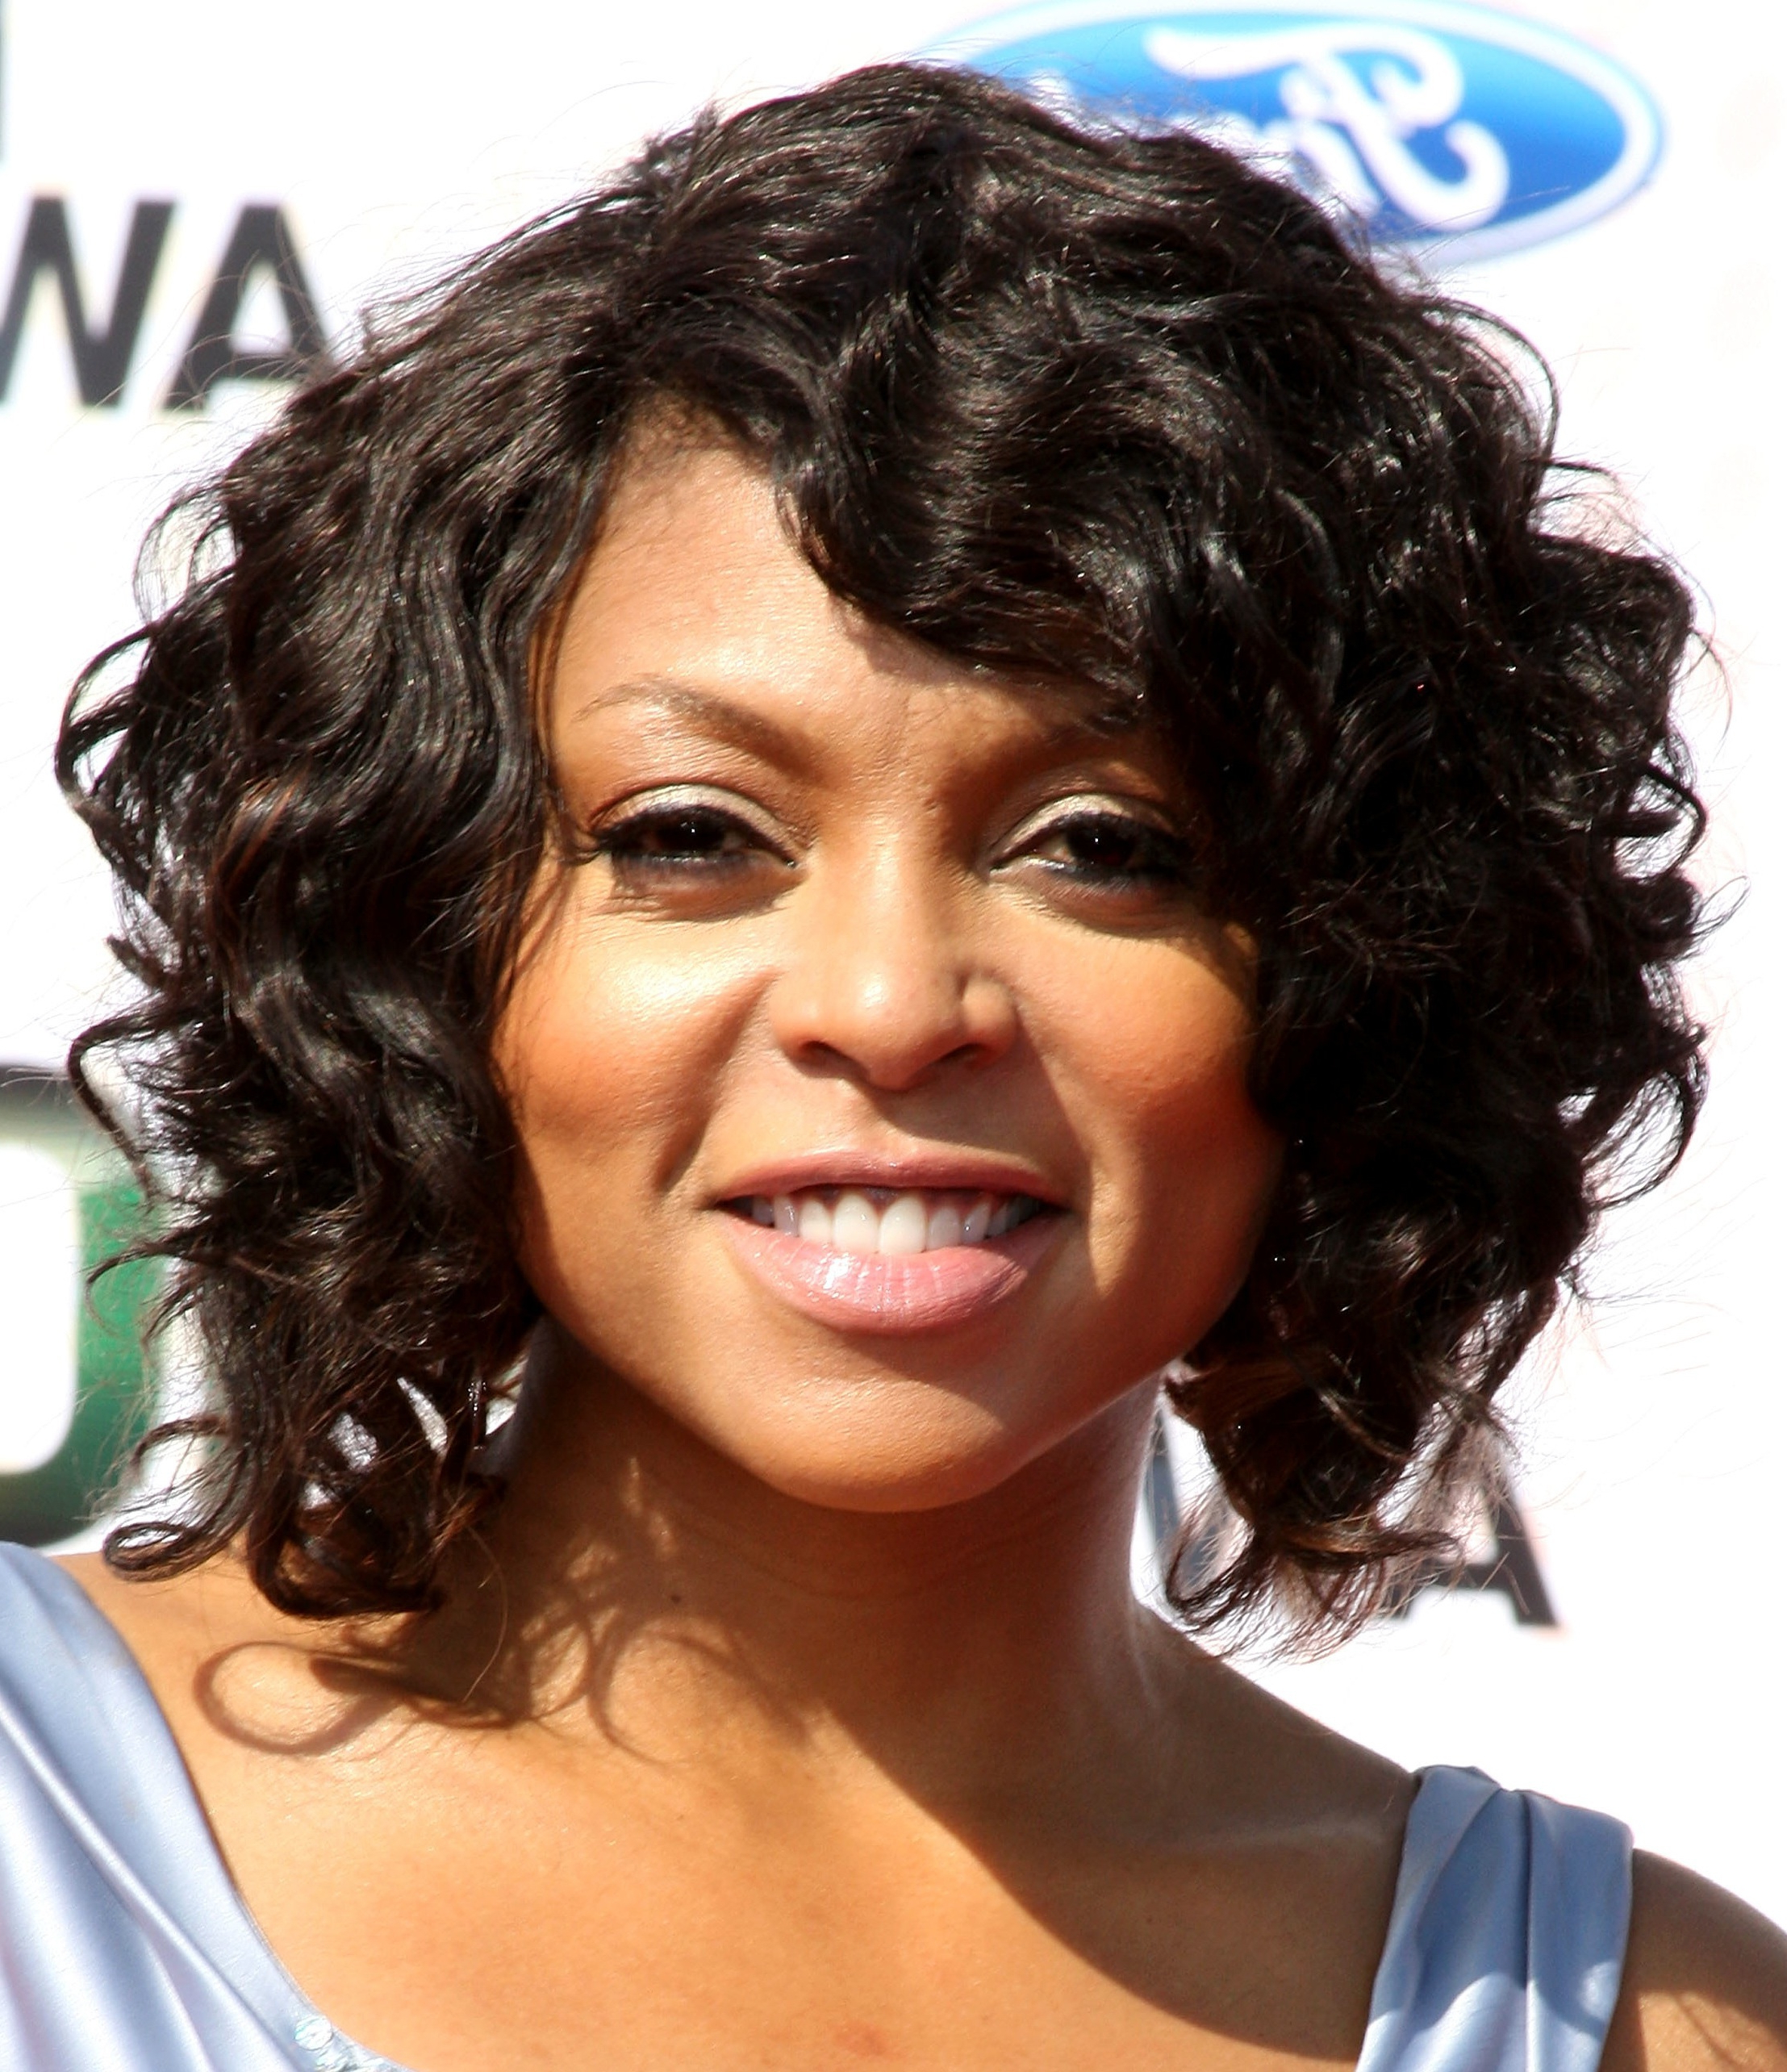 Best And Newest Medium Haircuts For Black Women Round Face Regarding Short Curly Hairstyles For Black Women With Round Faces – Hairstyle (View 9 of 20)